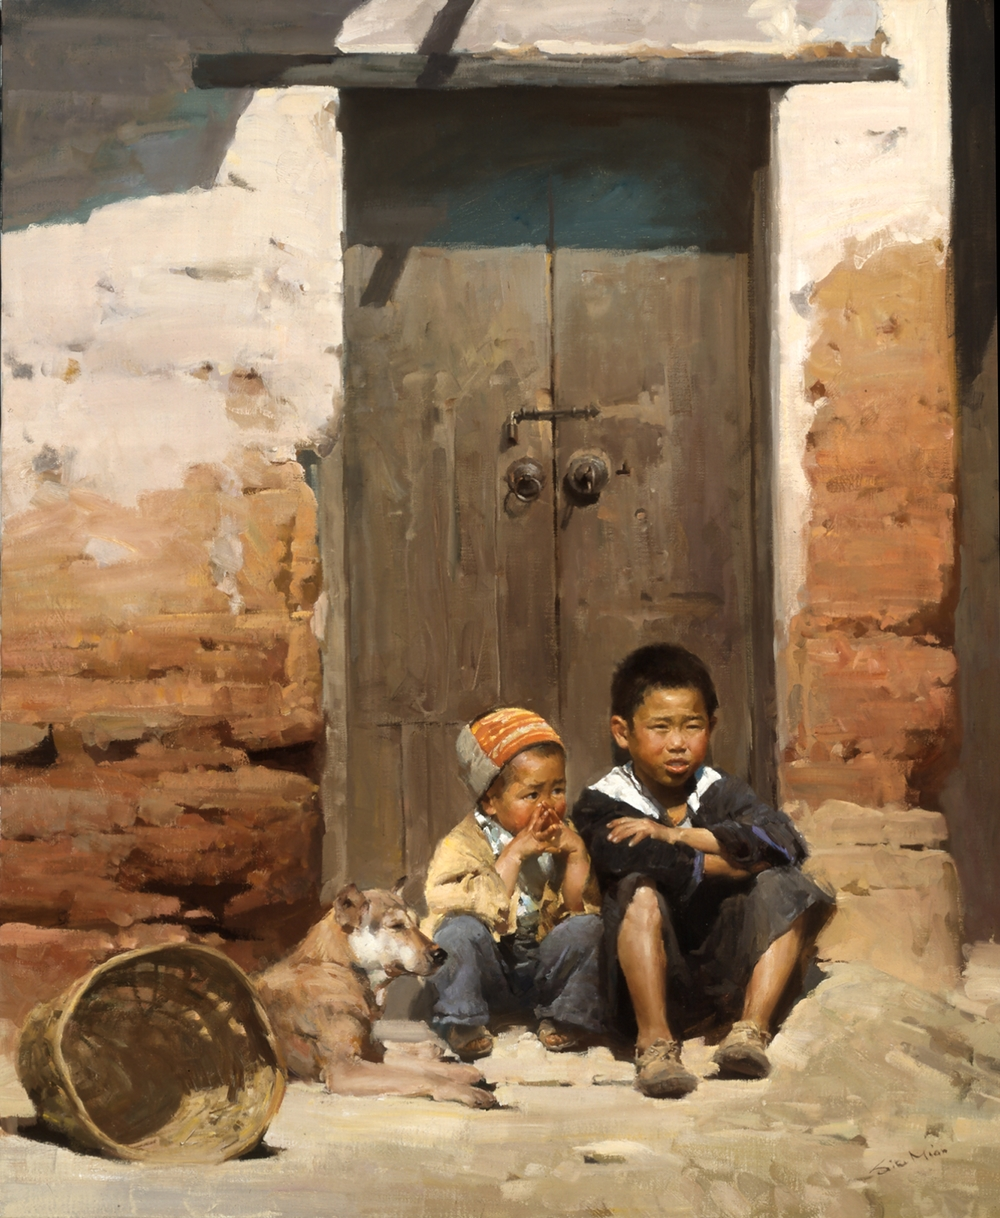 Mian Situ, USA. Waiting, Guangdong, China, 2000.